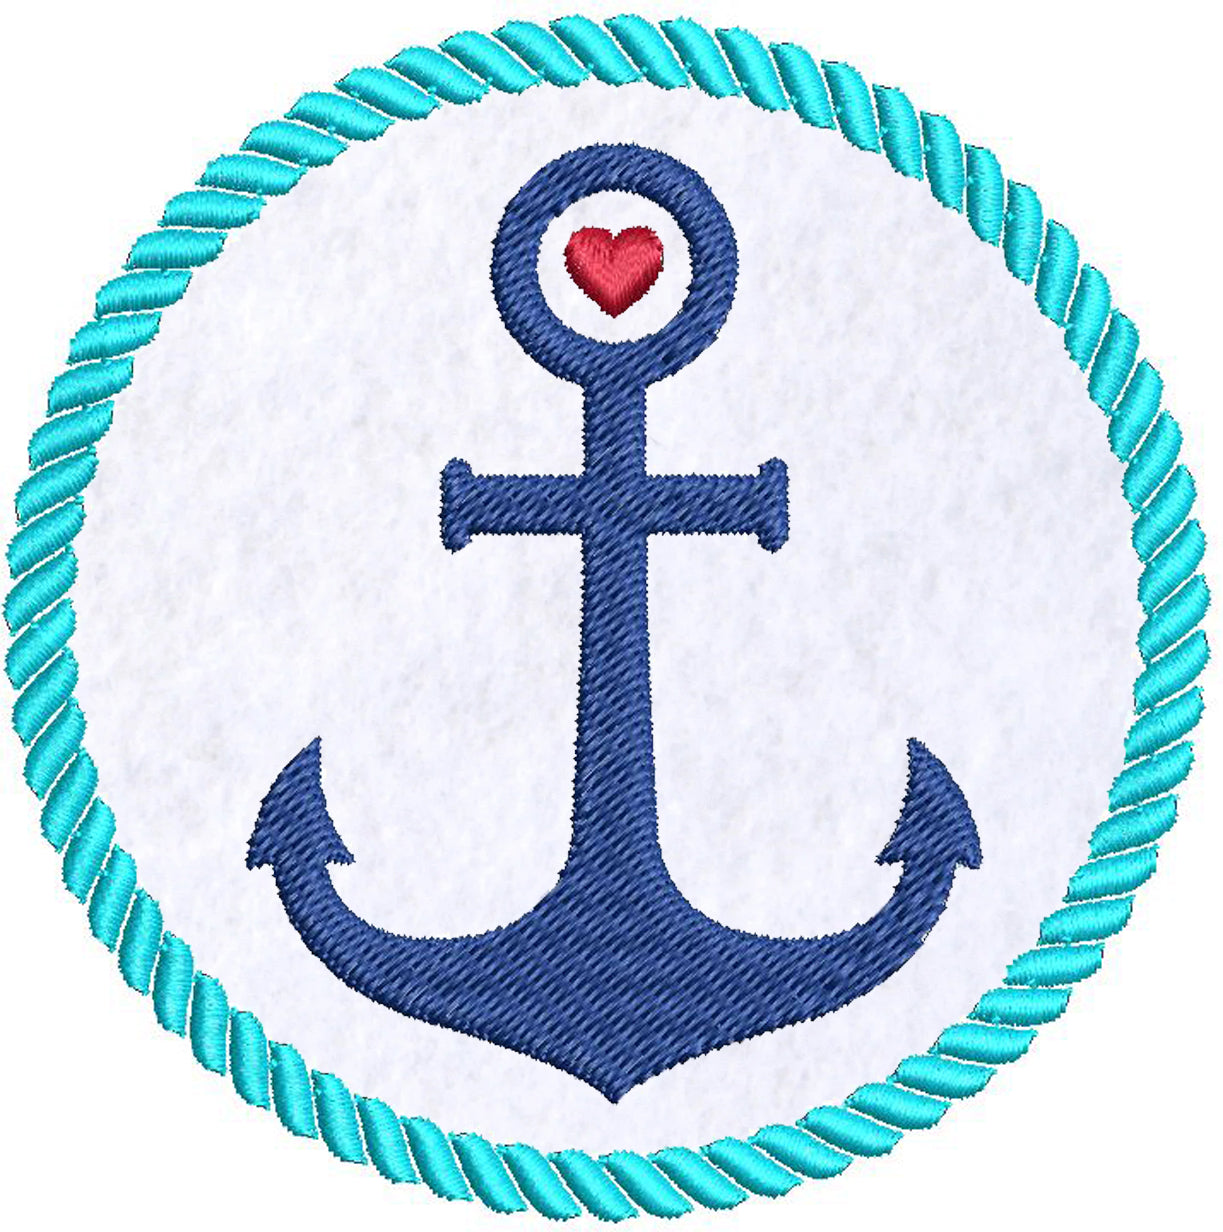 Iron on / Sew On Patch Applique Pretty Nautical Colorful Anchor and Rope Cartoon Icon #4 Embroidered Design